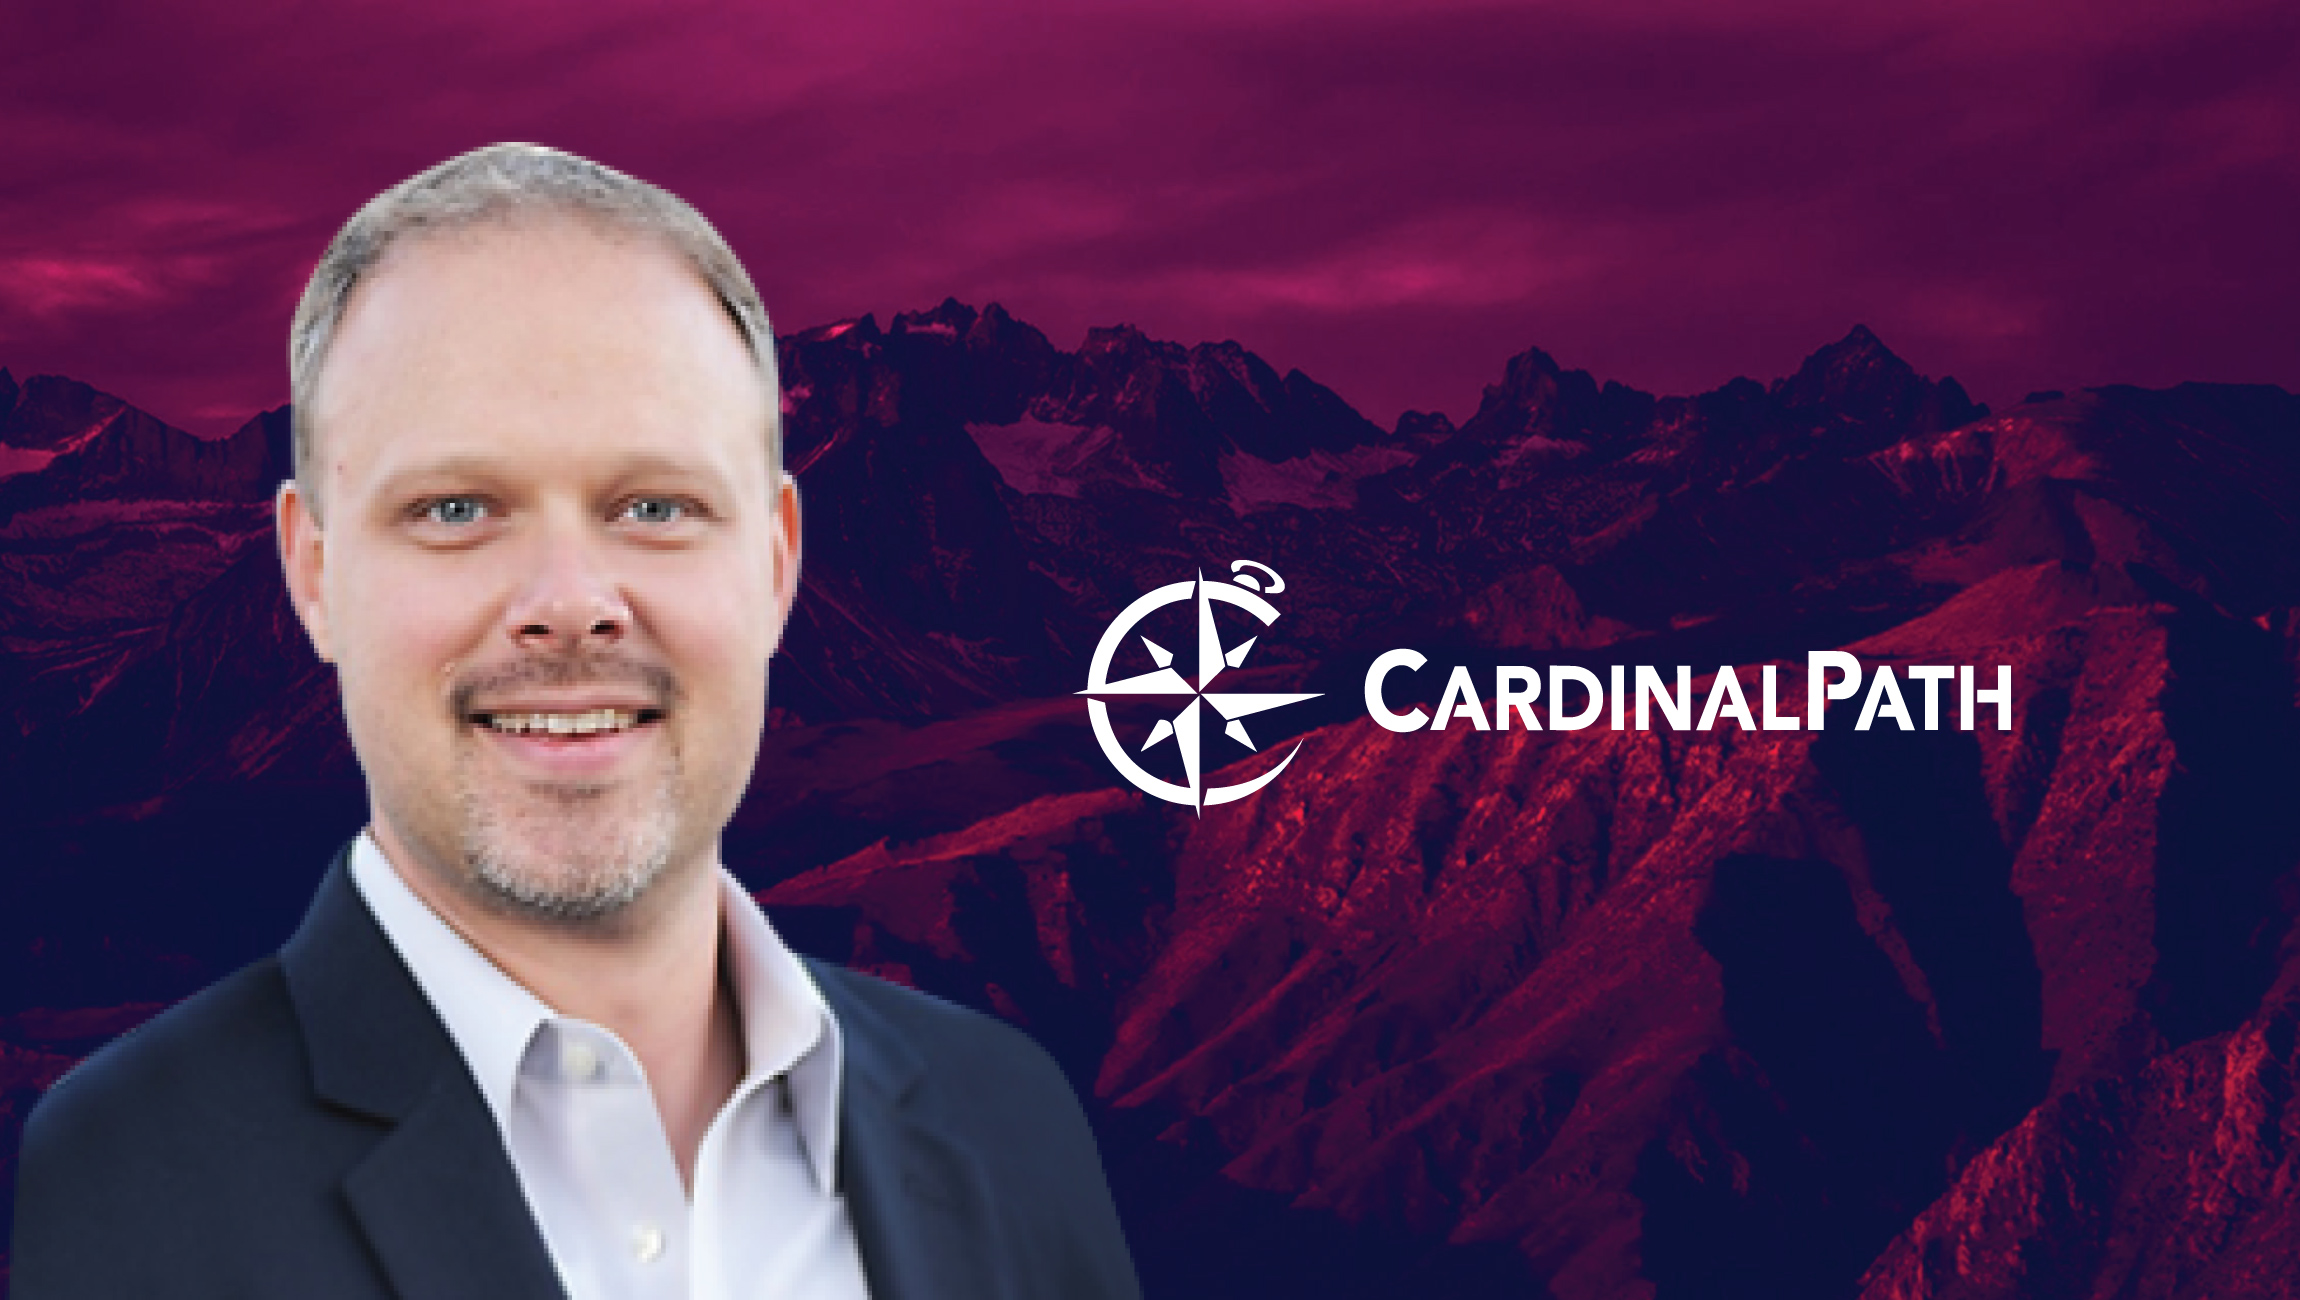 Salestech Interview with David Booth, Co-Founder and Chief Commercial Officer at Cardinal Path